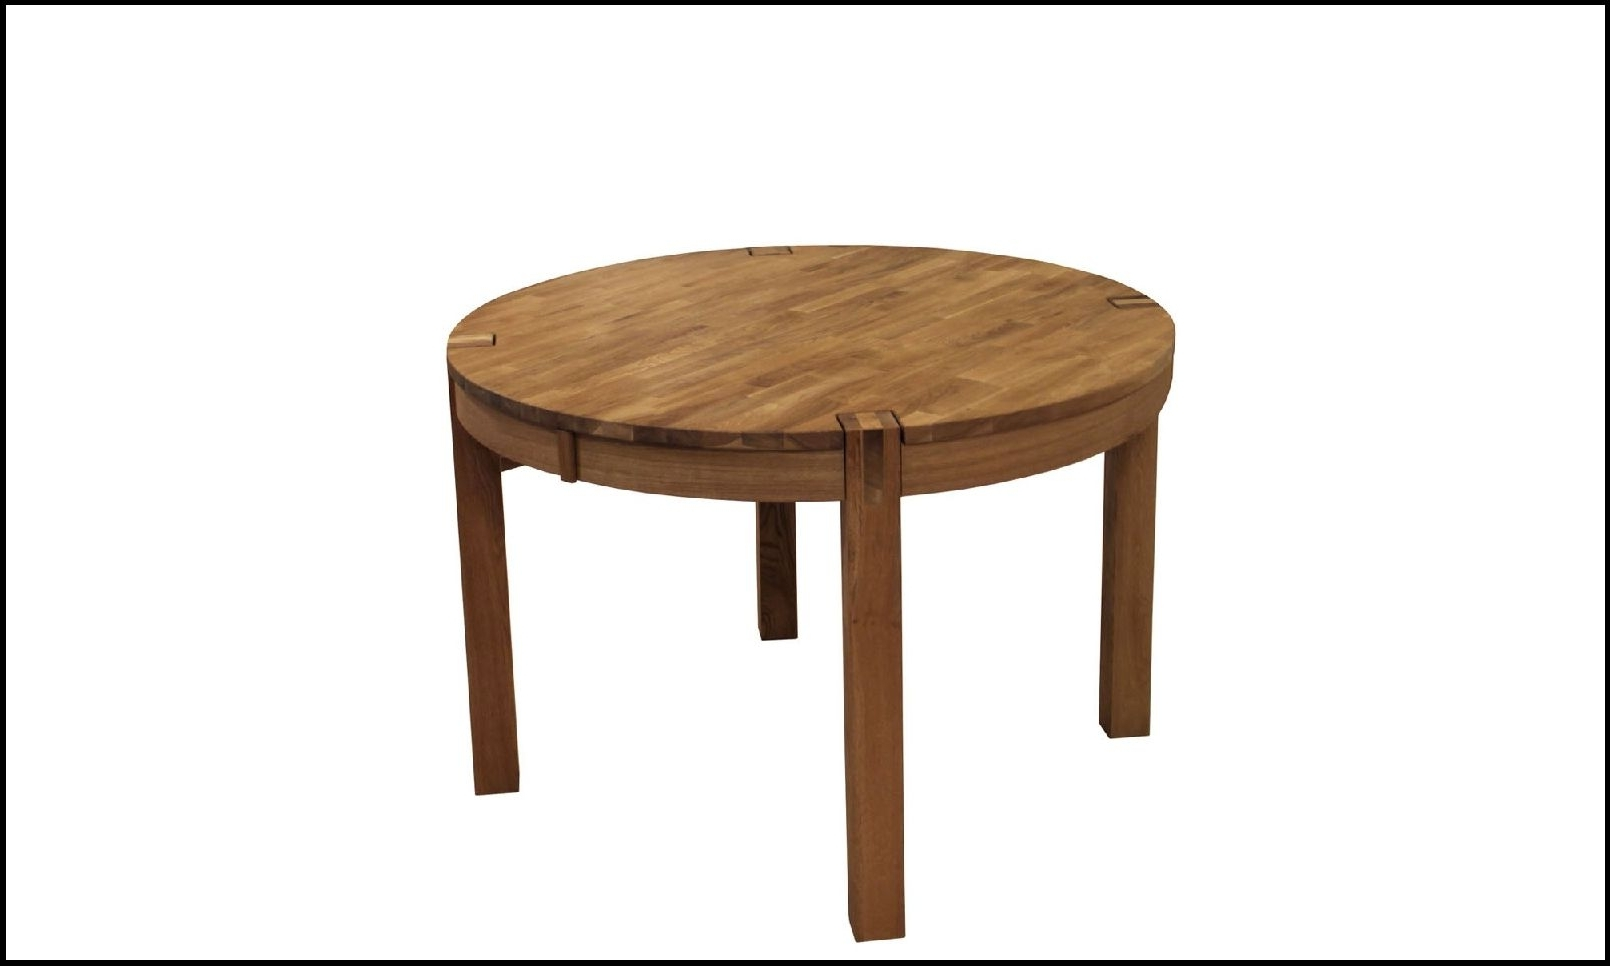 Charming Extending Round Dining Table Go Modern Furniture With Round For Most Current Extendable Round Dining Tables (View 12 of 25)